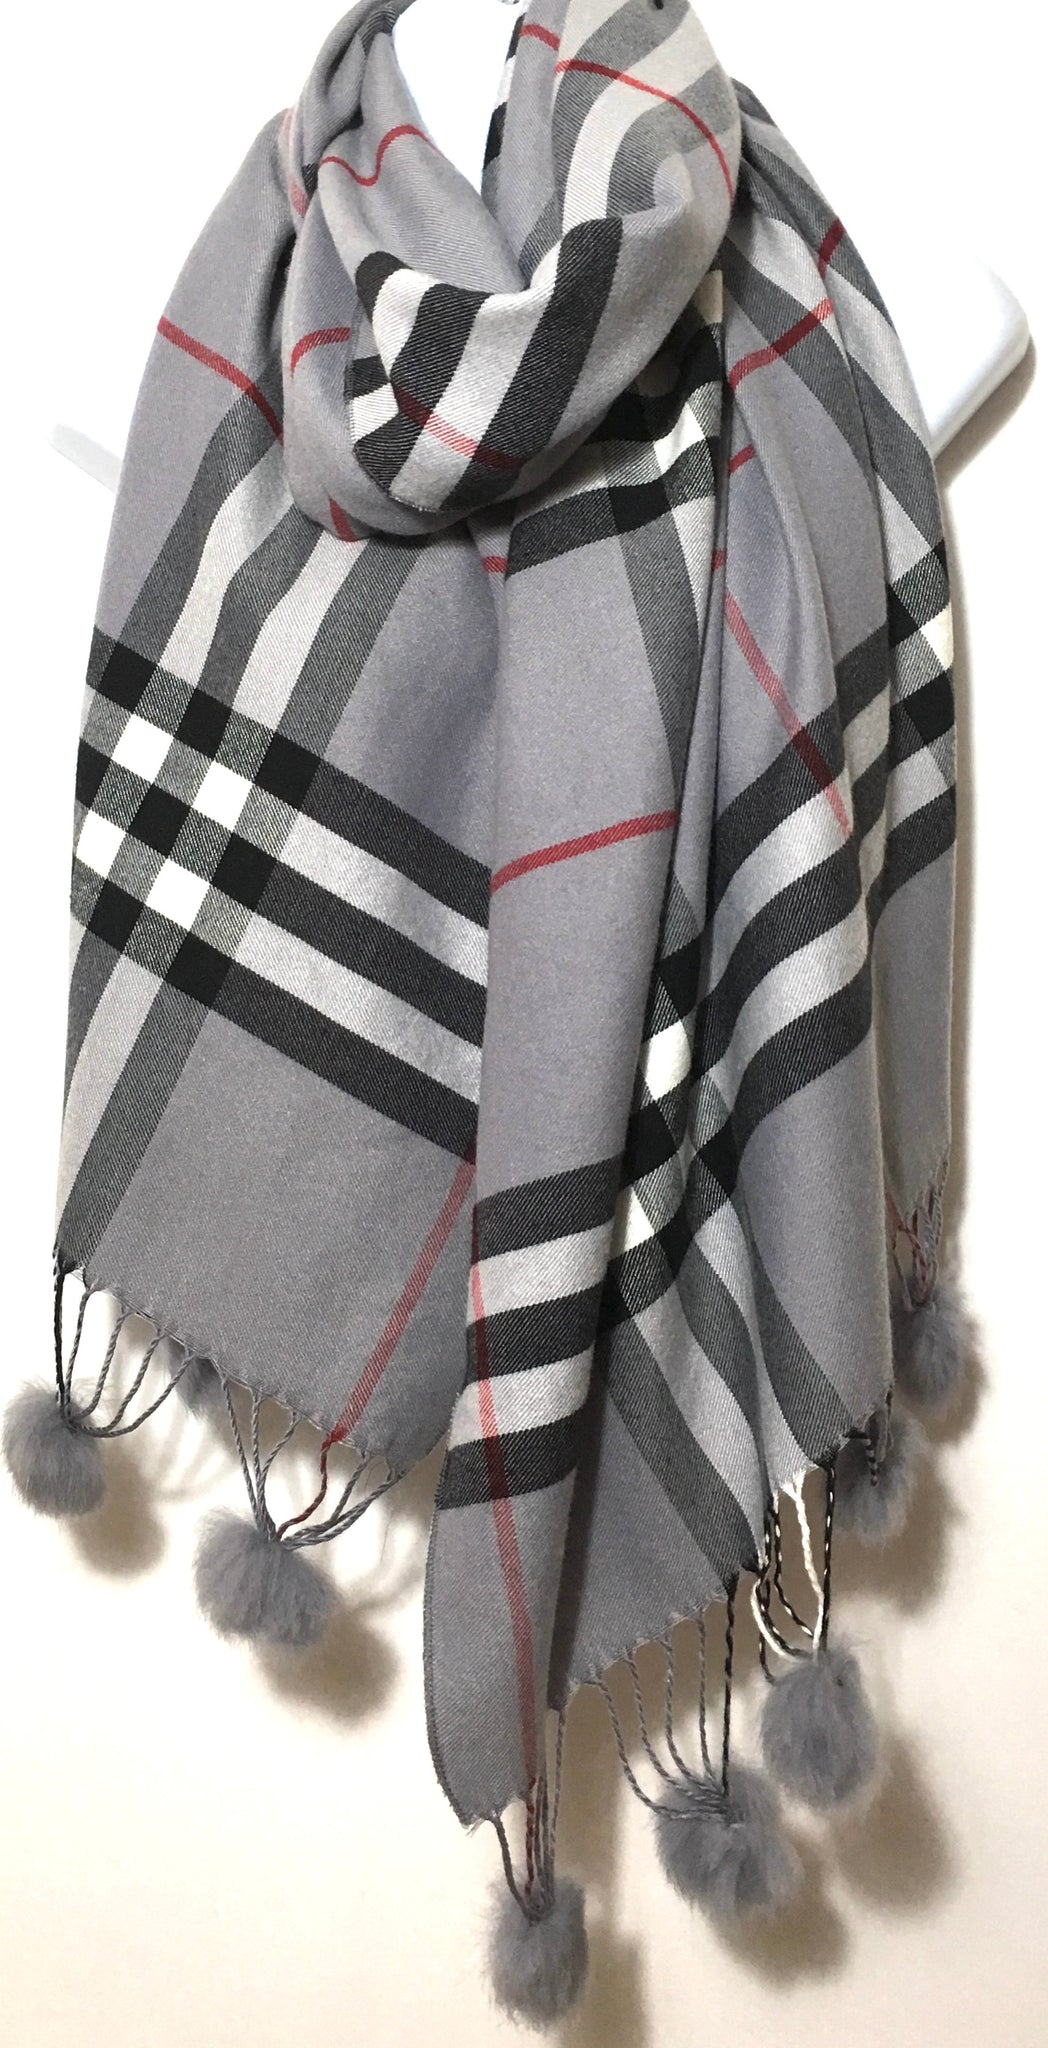 Grey checked cashmere & cotton blend scarf with pom poms